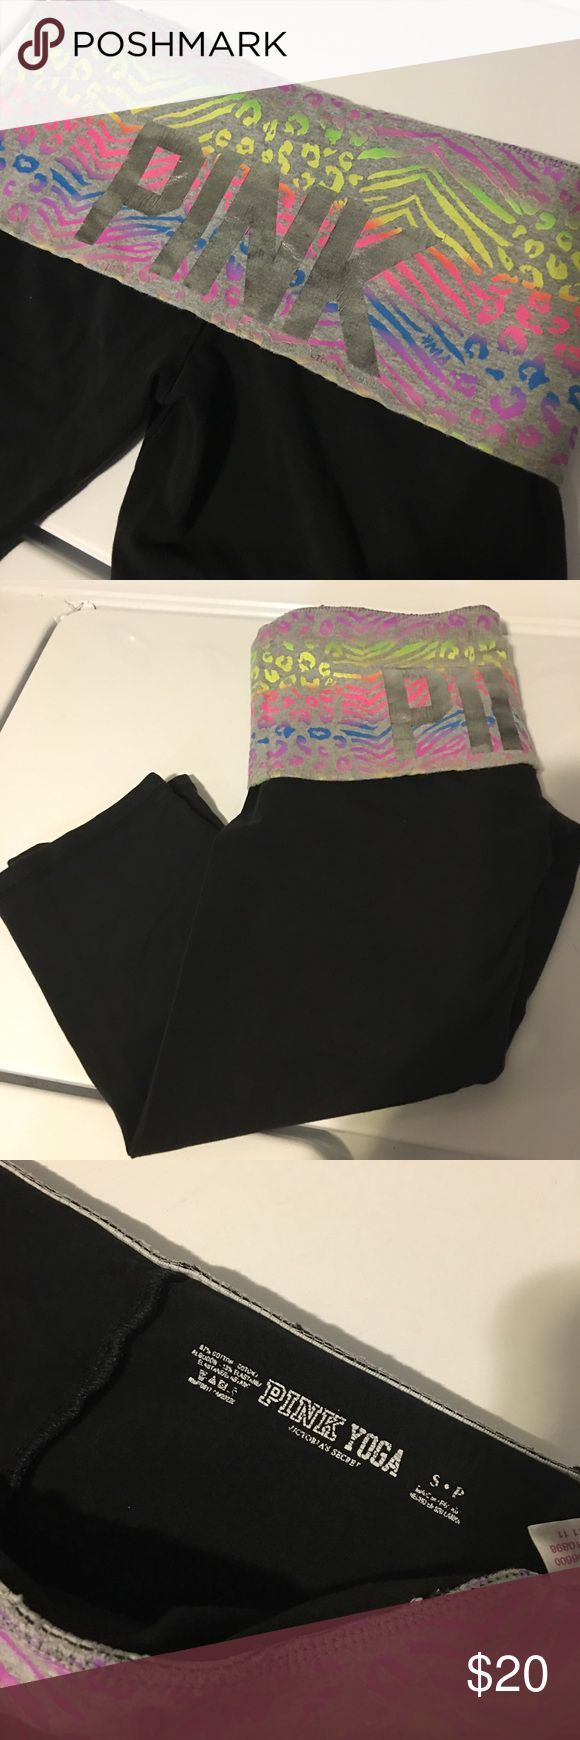 "PINK Victoria's Secret Yoga Capri Pants Open for reasonable offer. The item that you are about to purchase is a Victoria's Secret Pink Yoga Capri Pants. Size Small. In a good condition. To make an offer, please use ""offer"" button. Thank you! PINK Victoria's Secret Pants Capris"